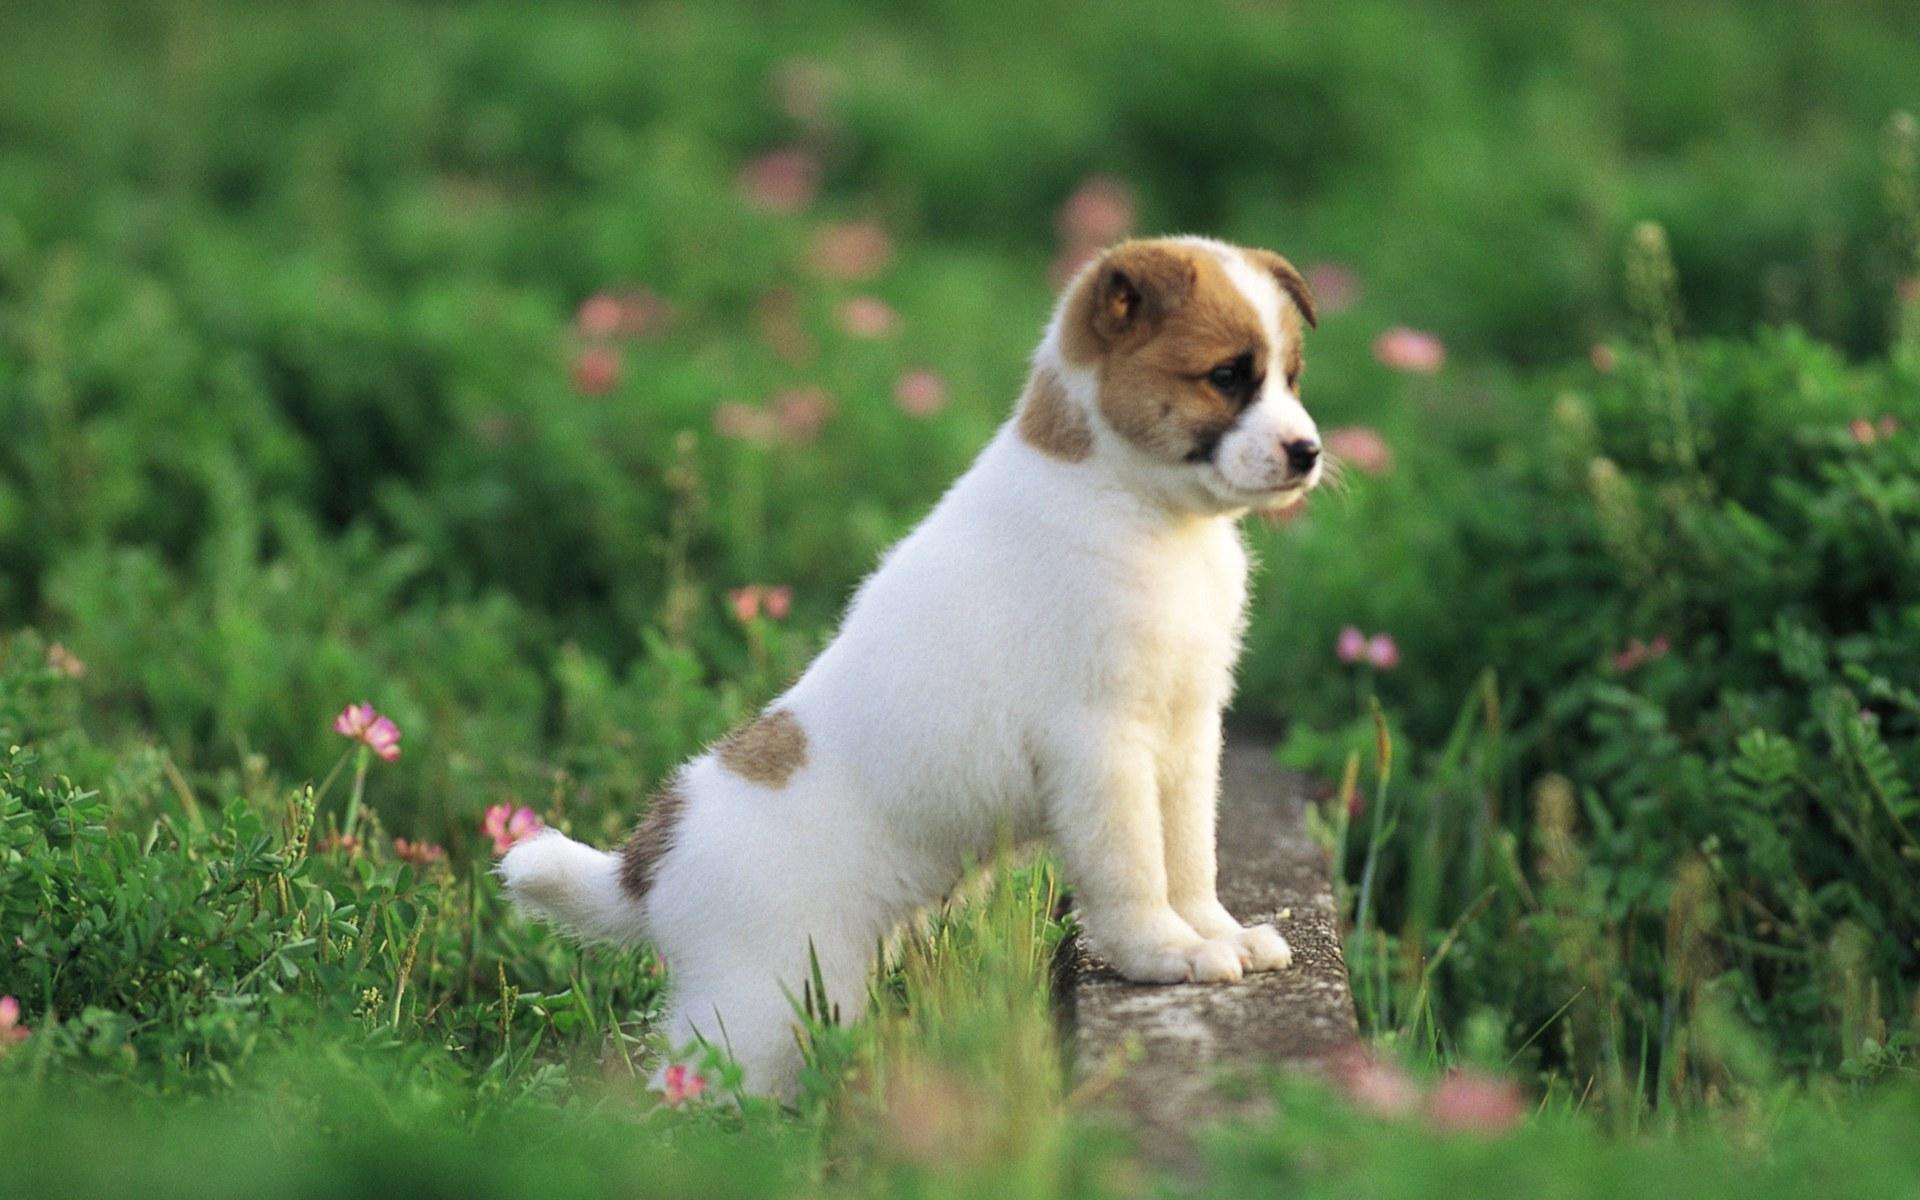 pretty-dog-wallpaper-puppies-free-hd-for-desktop - hd wallpaper